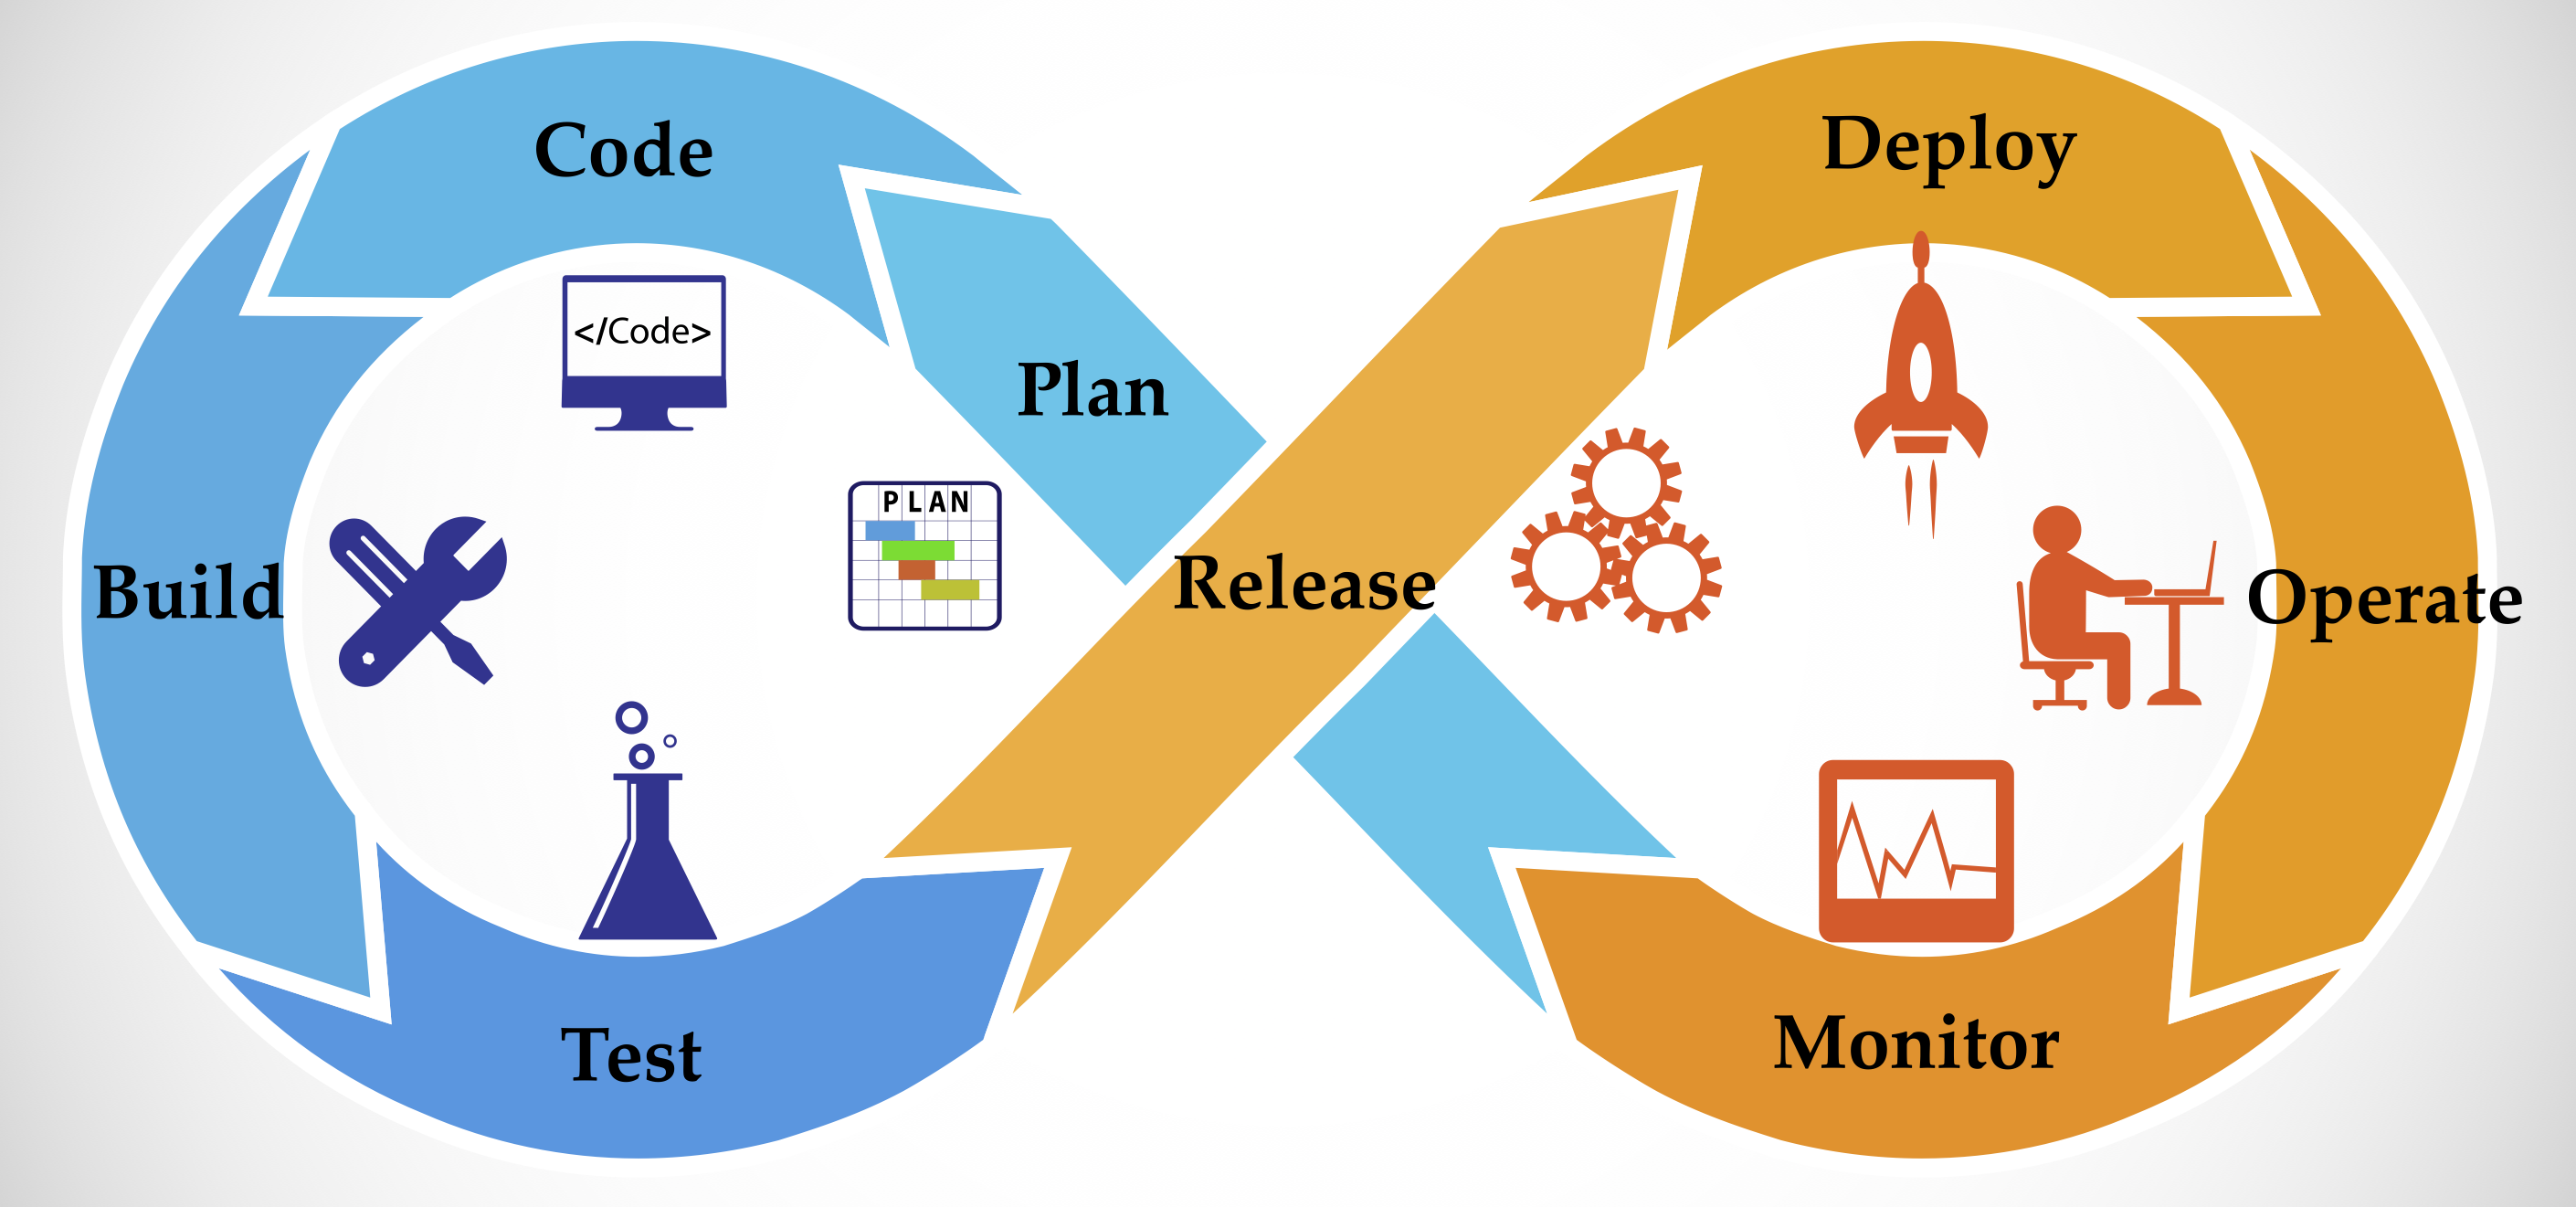 DevOps infinity deployment model graphic